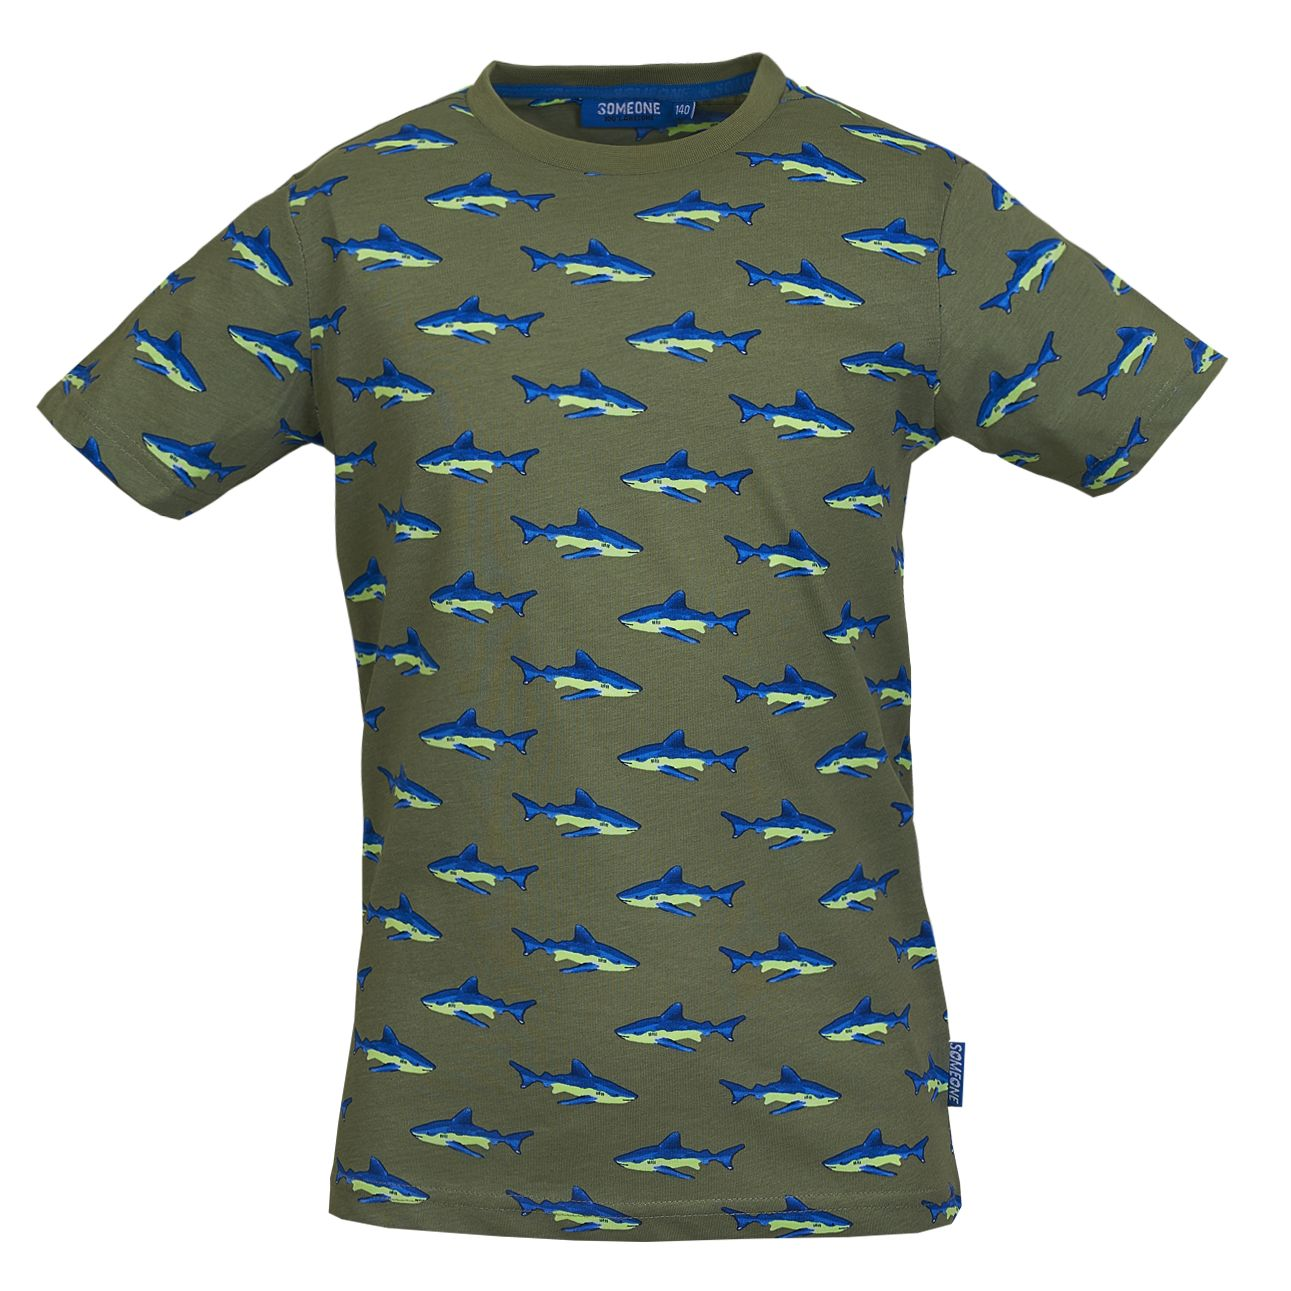 T-Shirt Haie 104 Khaki SOMEONE 100% Awesome